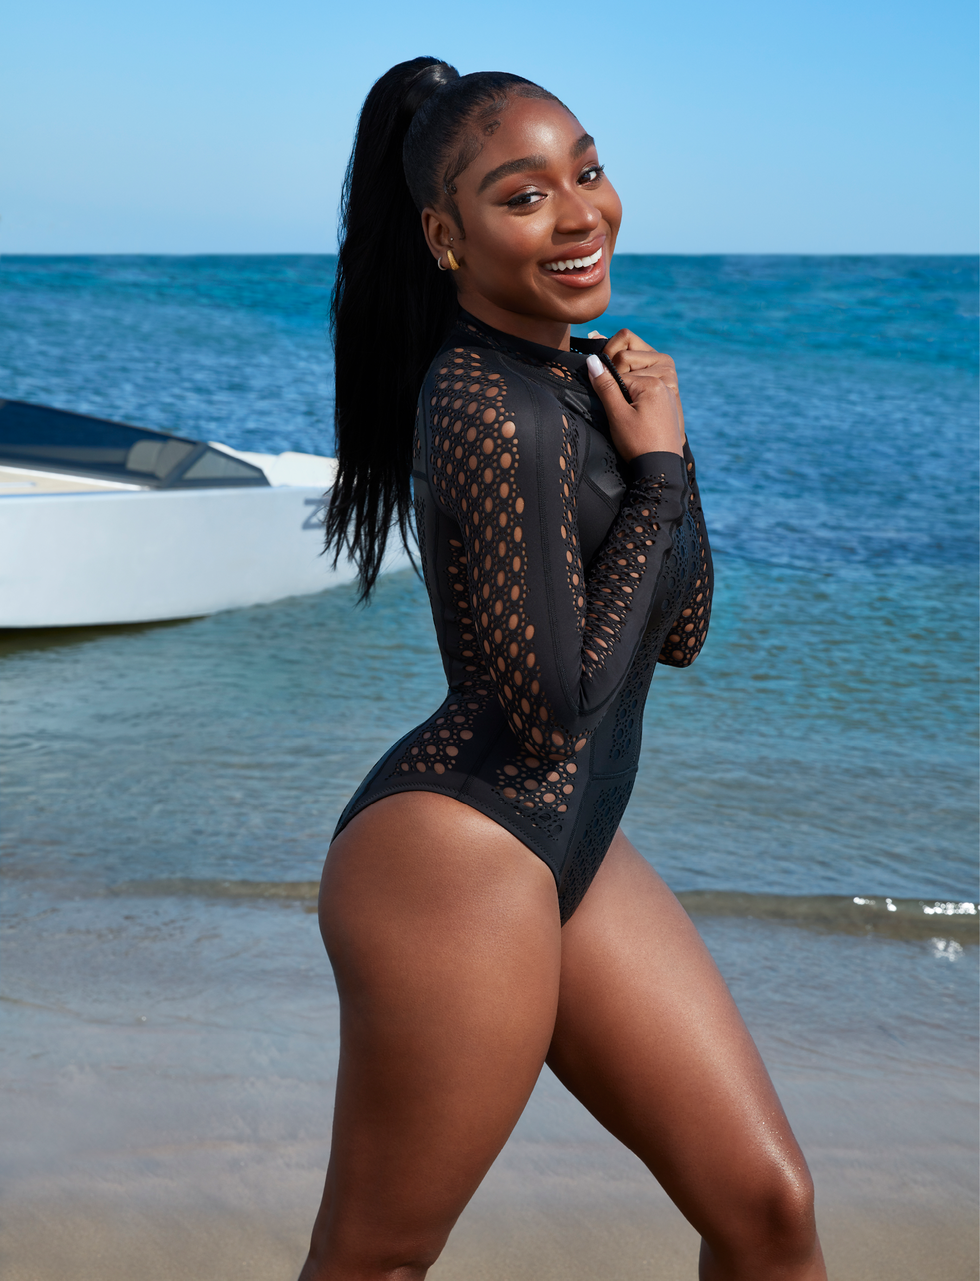 wh-normani2-1605038268.png?resize=980:*